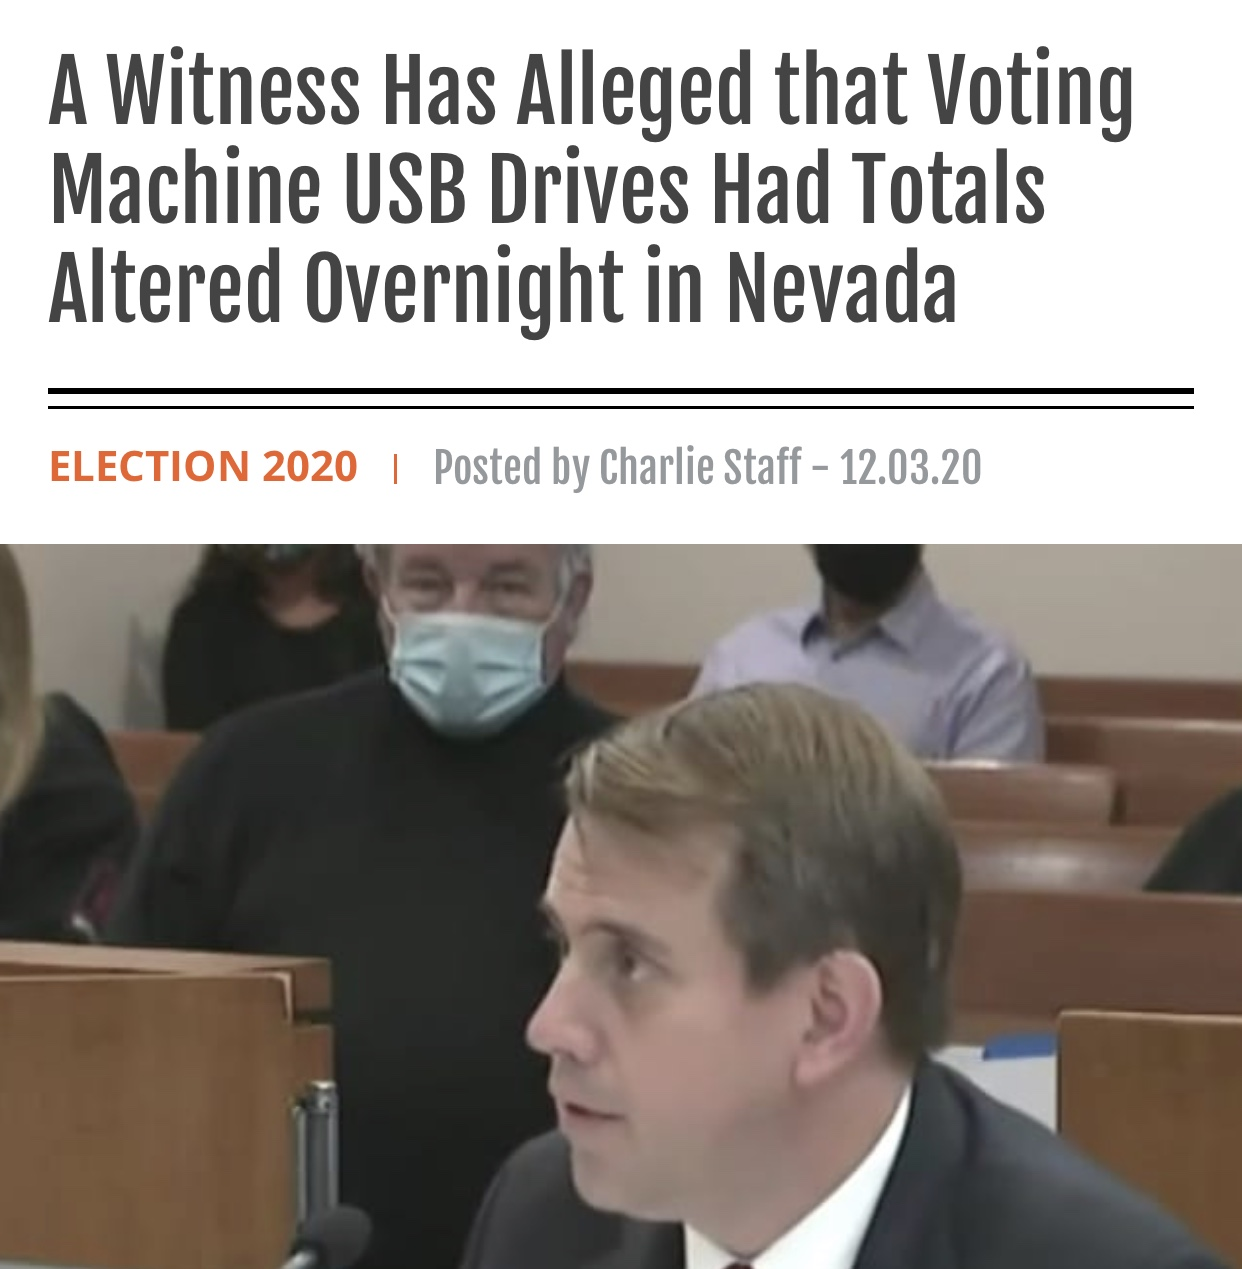 A Witness Has Alleged that Voting Machine USB Drives Had Totals Altered Overnight in Nevada